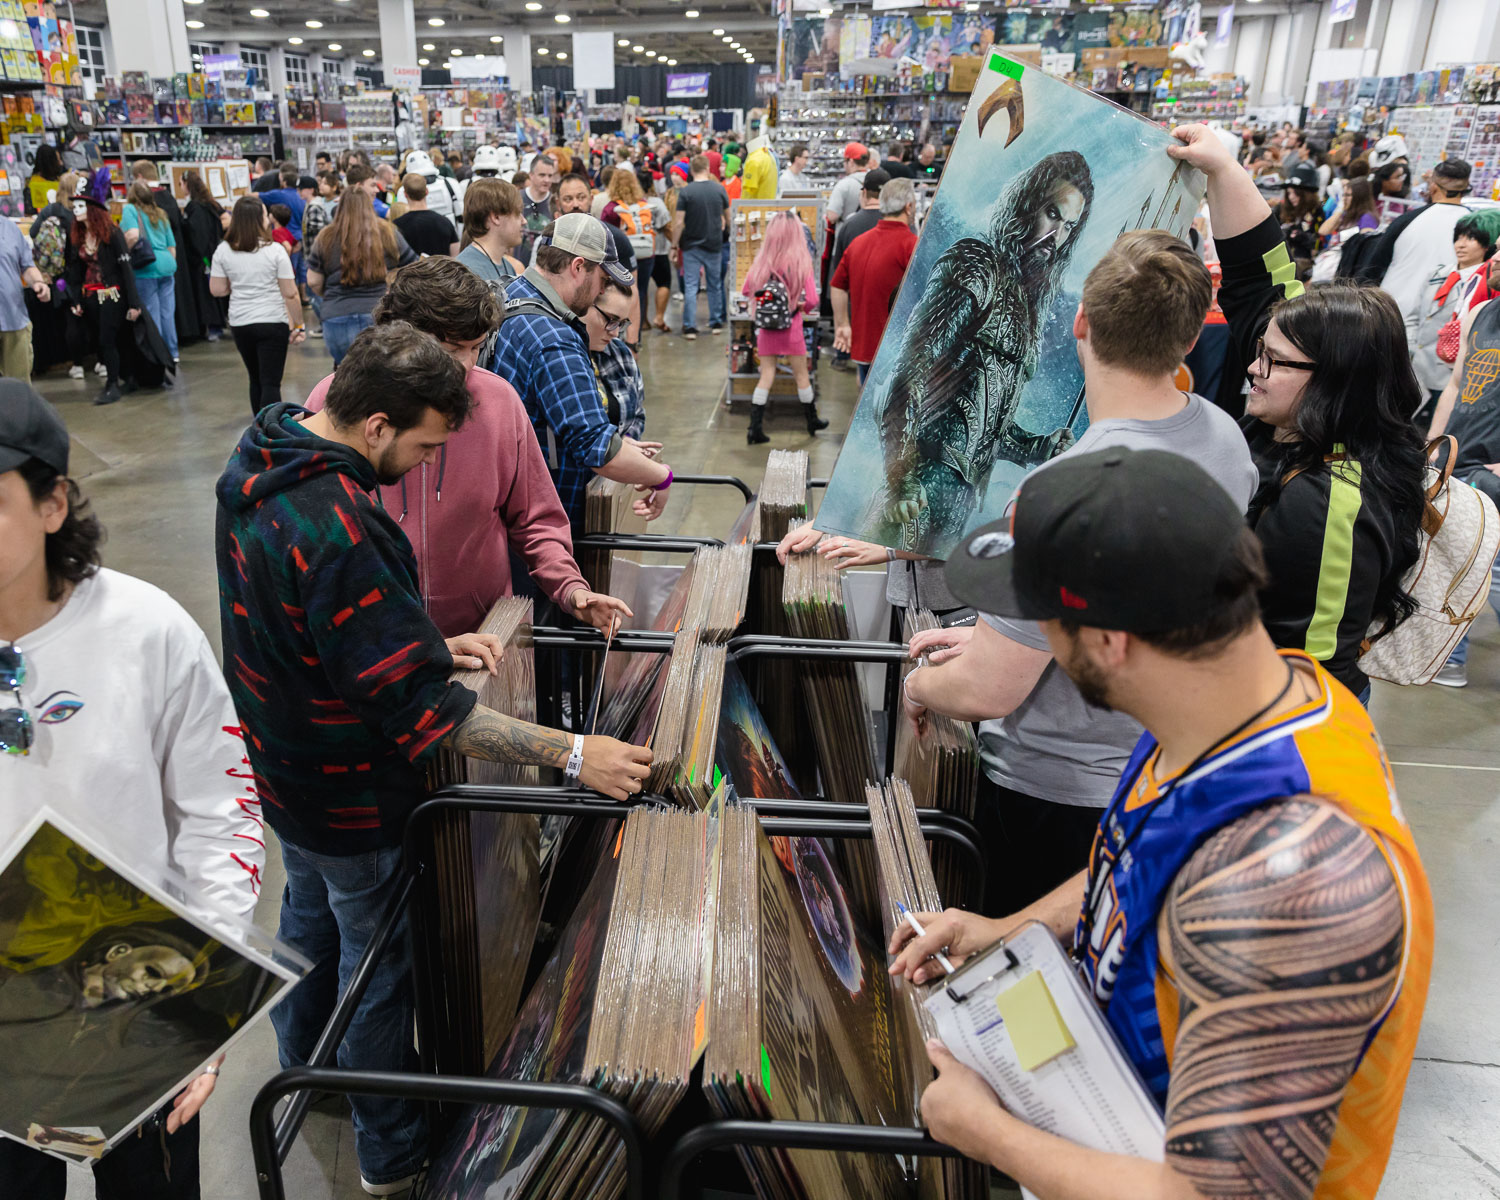 Everything nerdy for sale at FanX19 inclluding massive posters. Pro Tip: Have a plan for storing such large purchases during the con, or you will be stuck holding it all day... Photo: @Lmsorenson